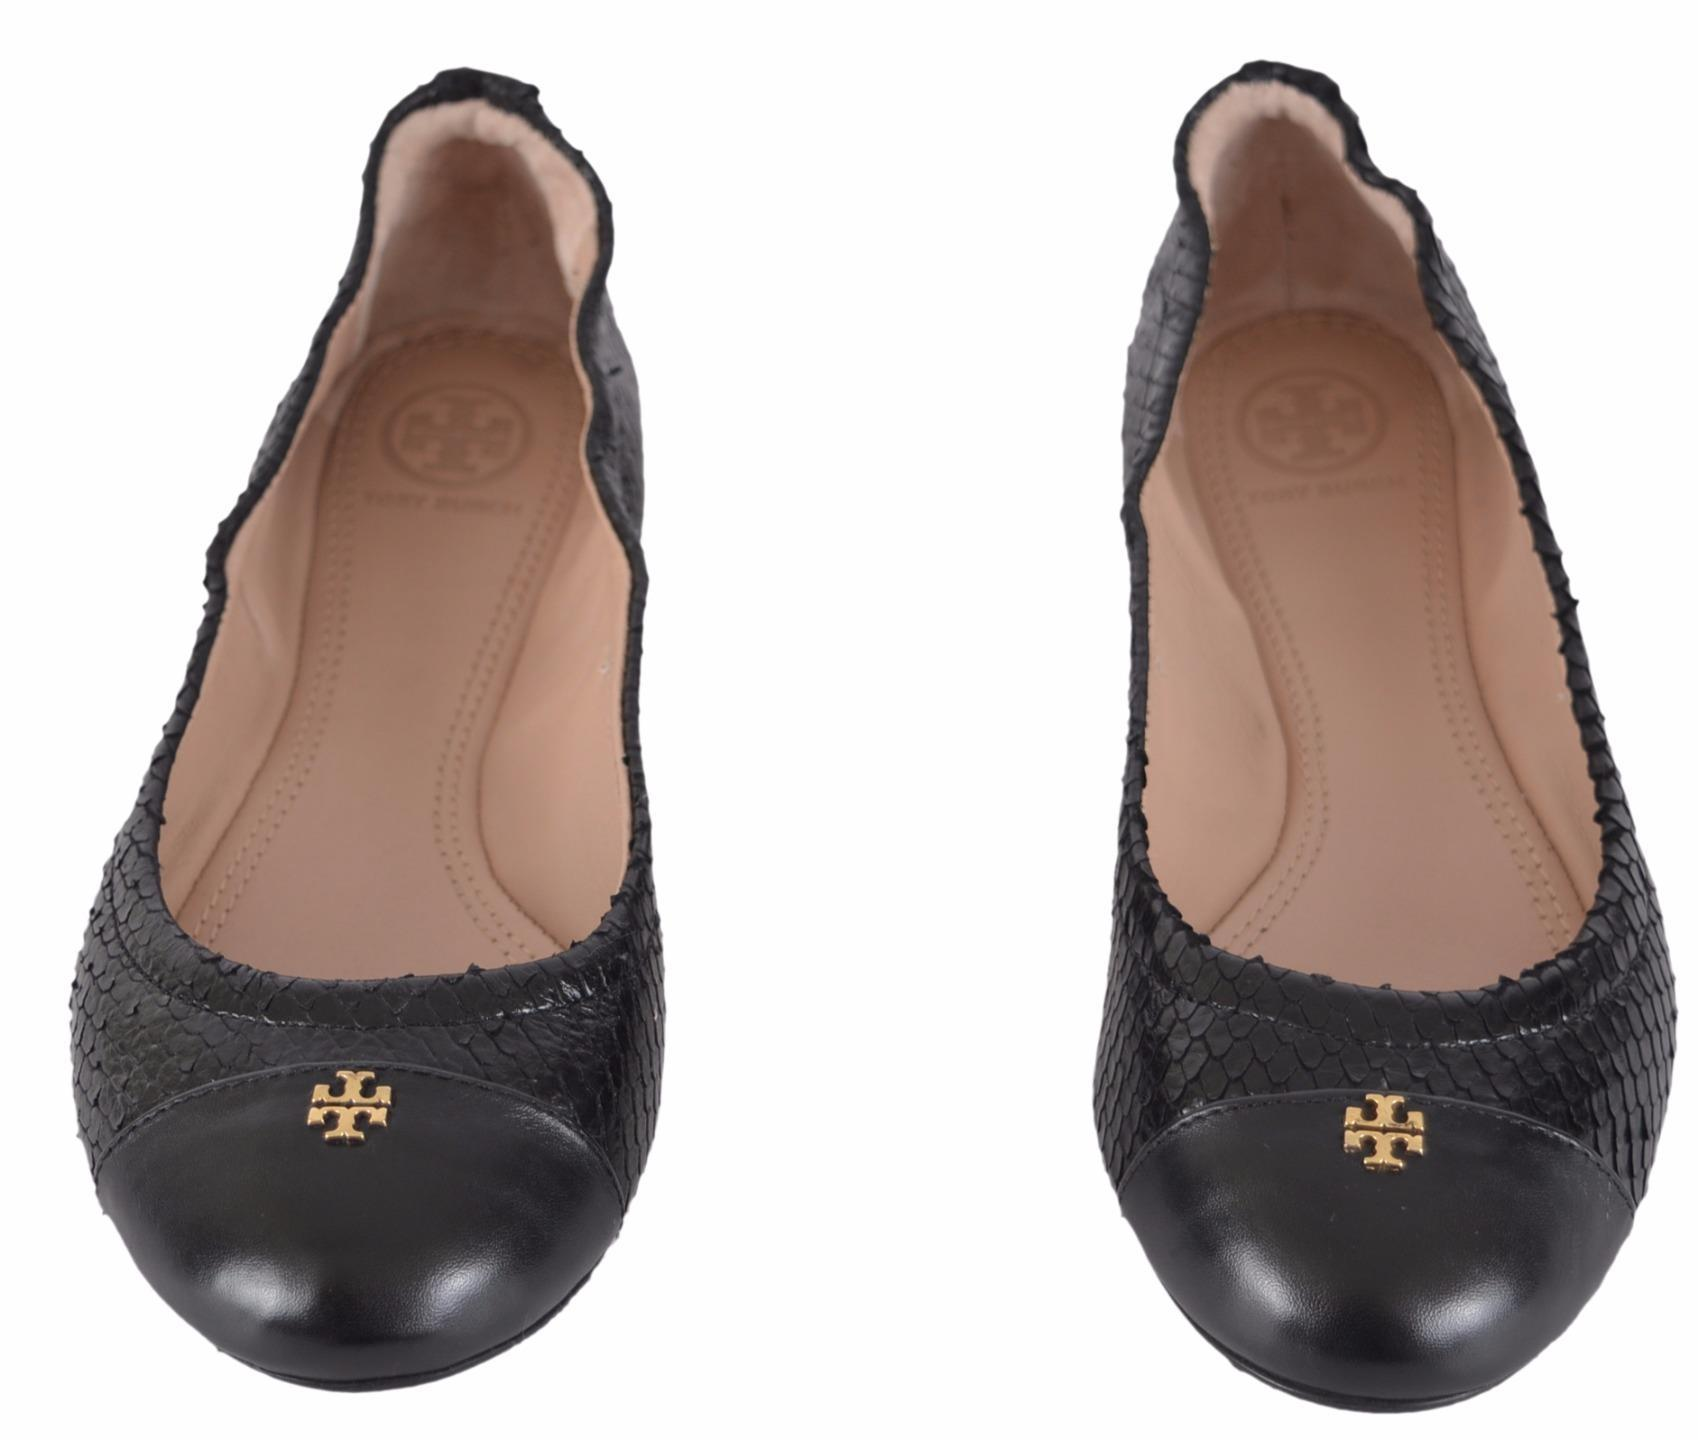 Tory Burch Black New Women's York Snake Print Cap Toe Ballet Flats Size US  6 Regular (M, B) - Tradesy